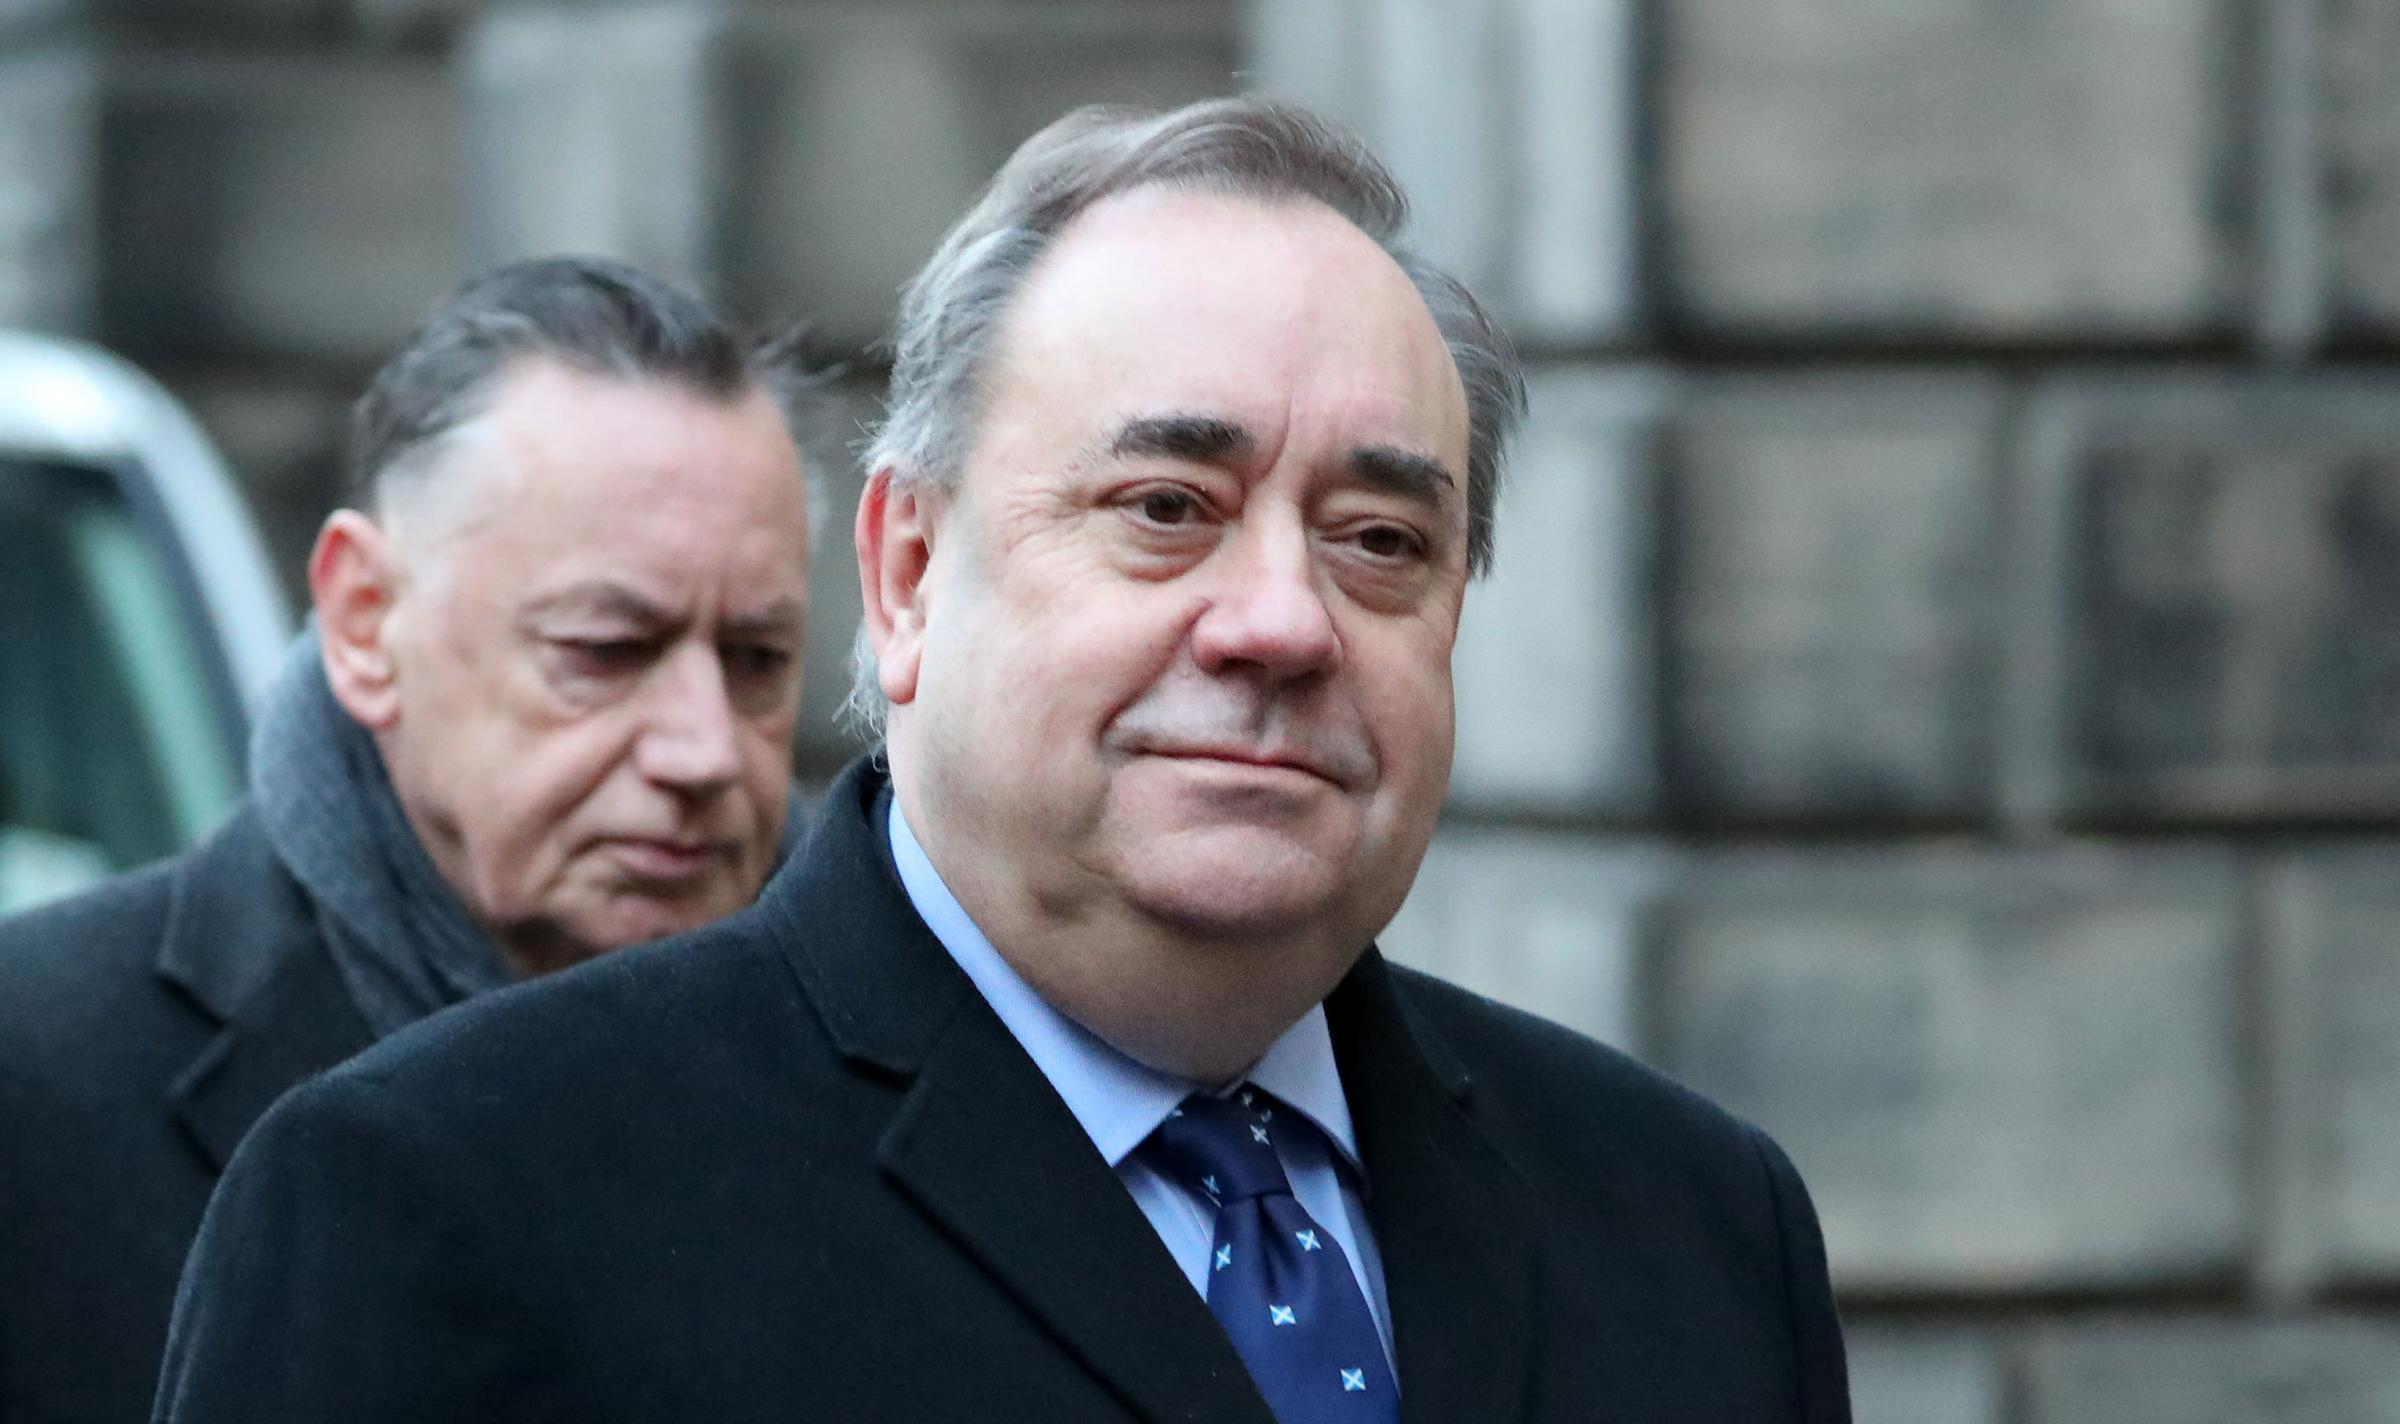 The committee will look at the Scottish Government's handling of the complaints which are denied by Alex Salmond